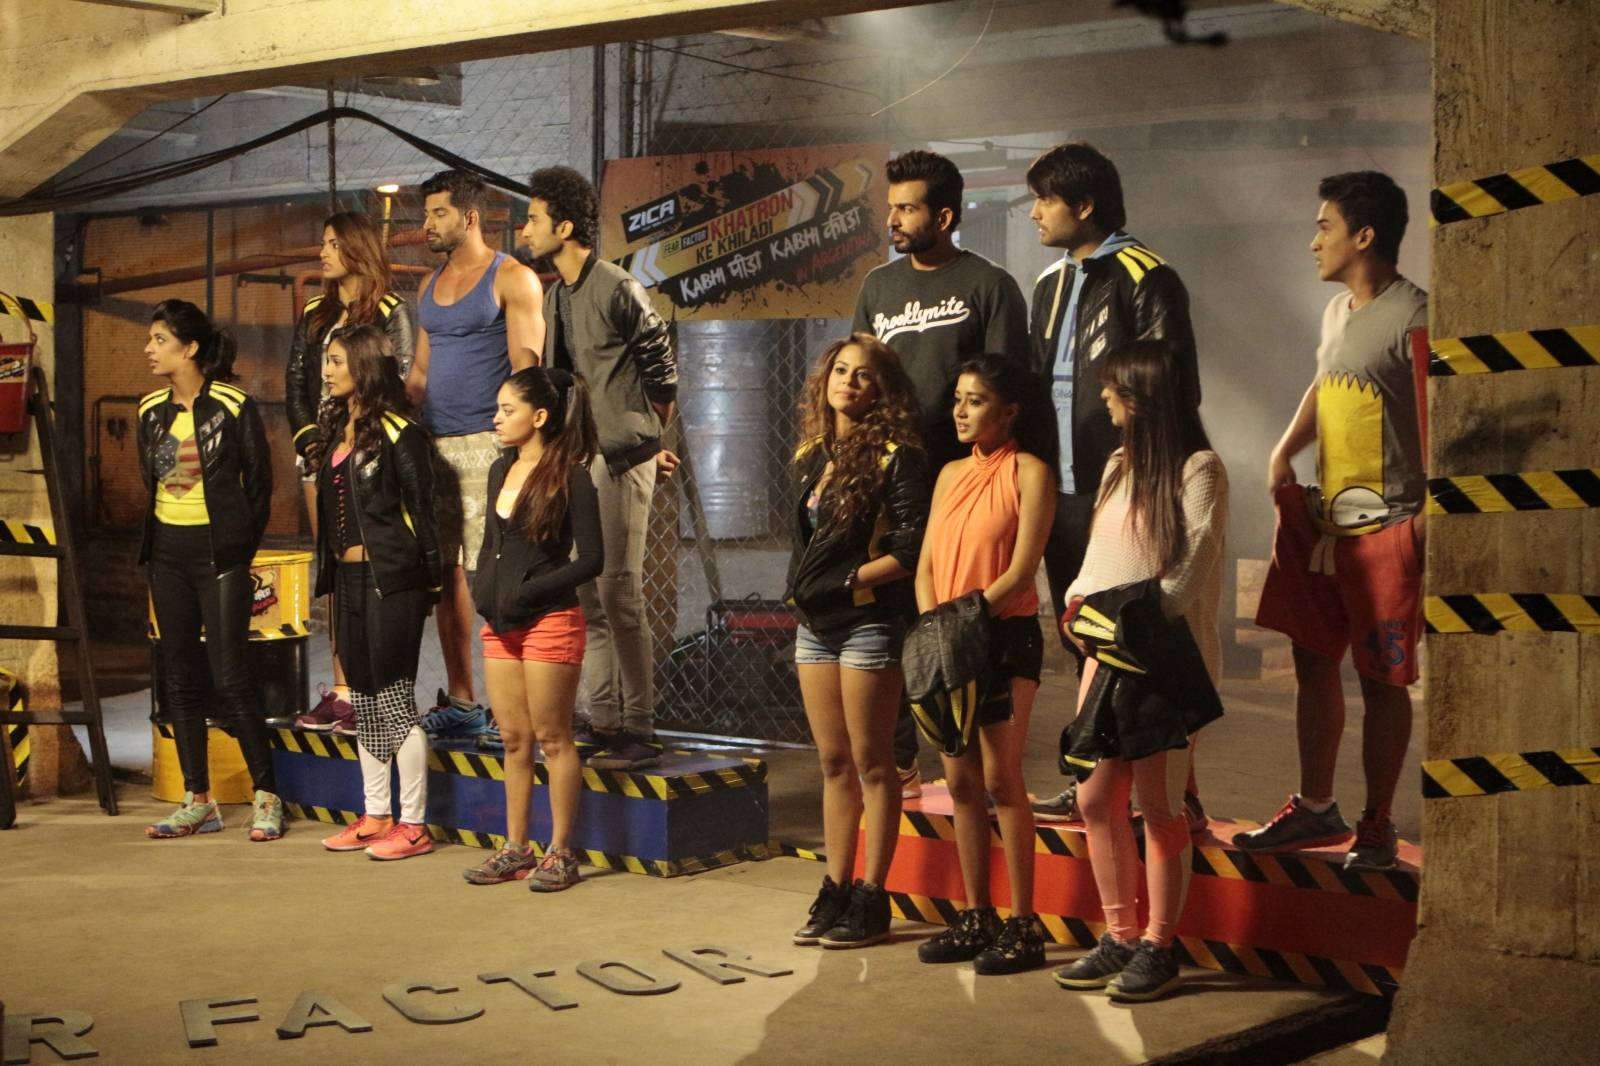 #DarrKiTsunami! Khatro Ke Khiladi 7 Episode 28th February 2016 Participants Performing Dangerous Stunts